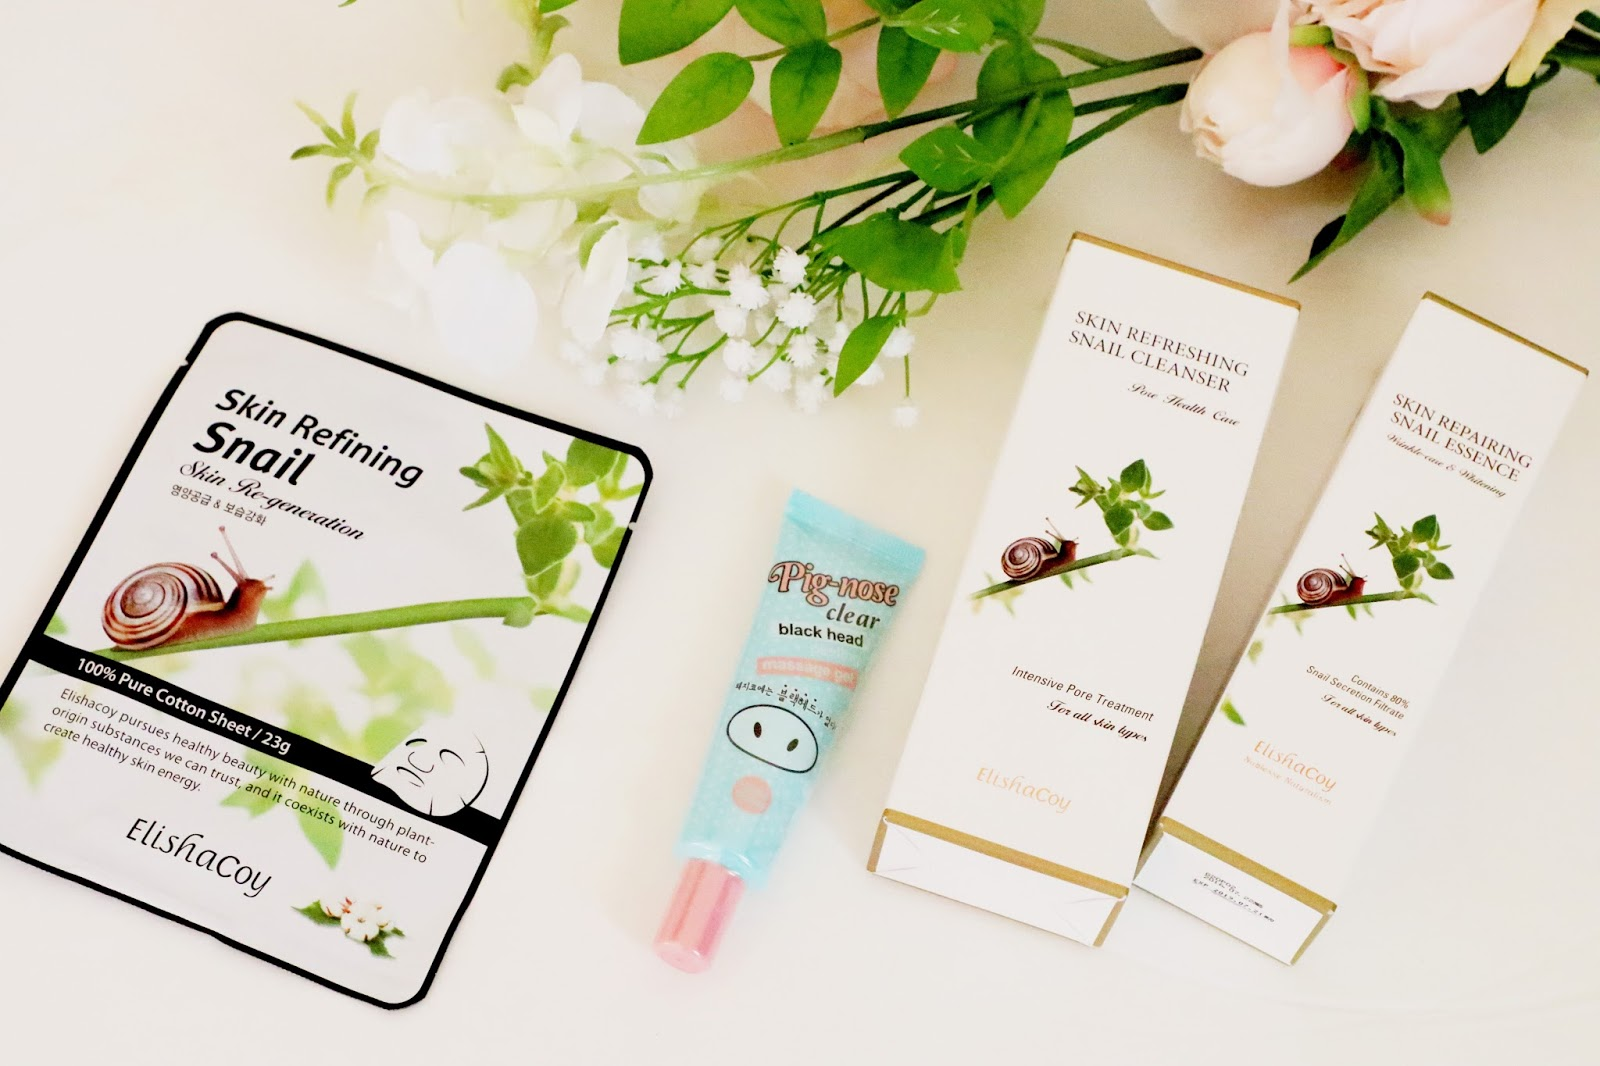 Favorite Products From The K Beauty Skin Care Line At Cvs Pharmacy